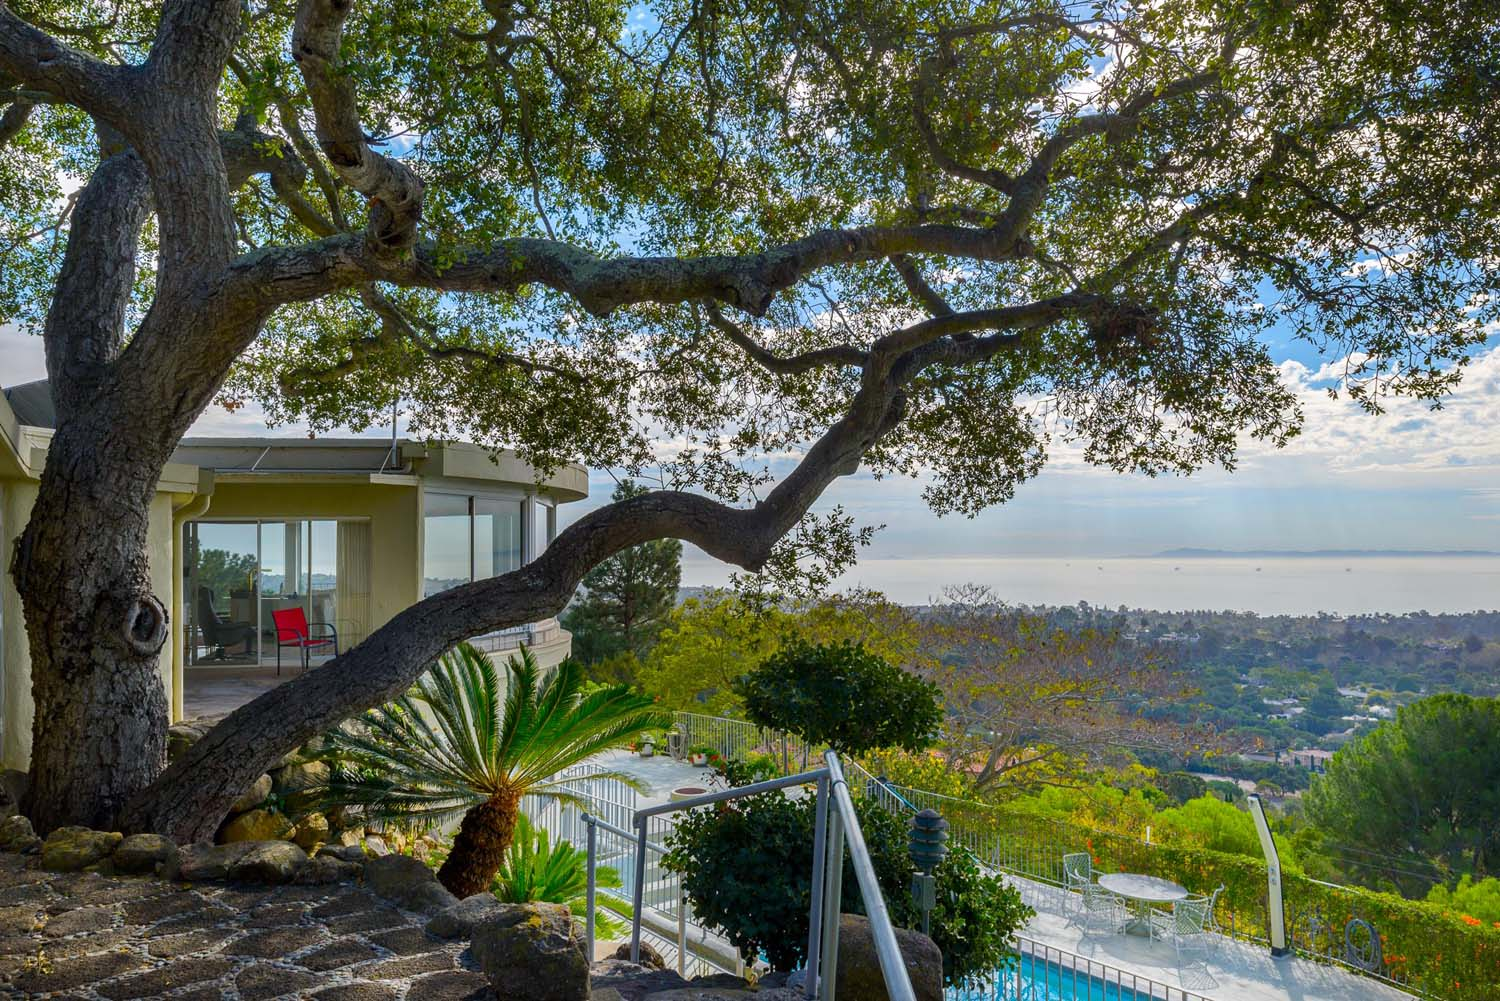 1508 East Mountain Drive Santa Barbara, California 93108   Overlooking the entire Montecito Valley    Offered at $5,500,000 SOLD